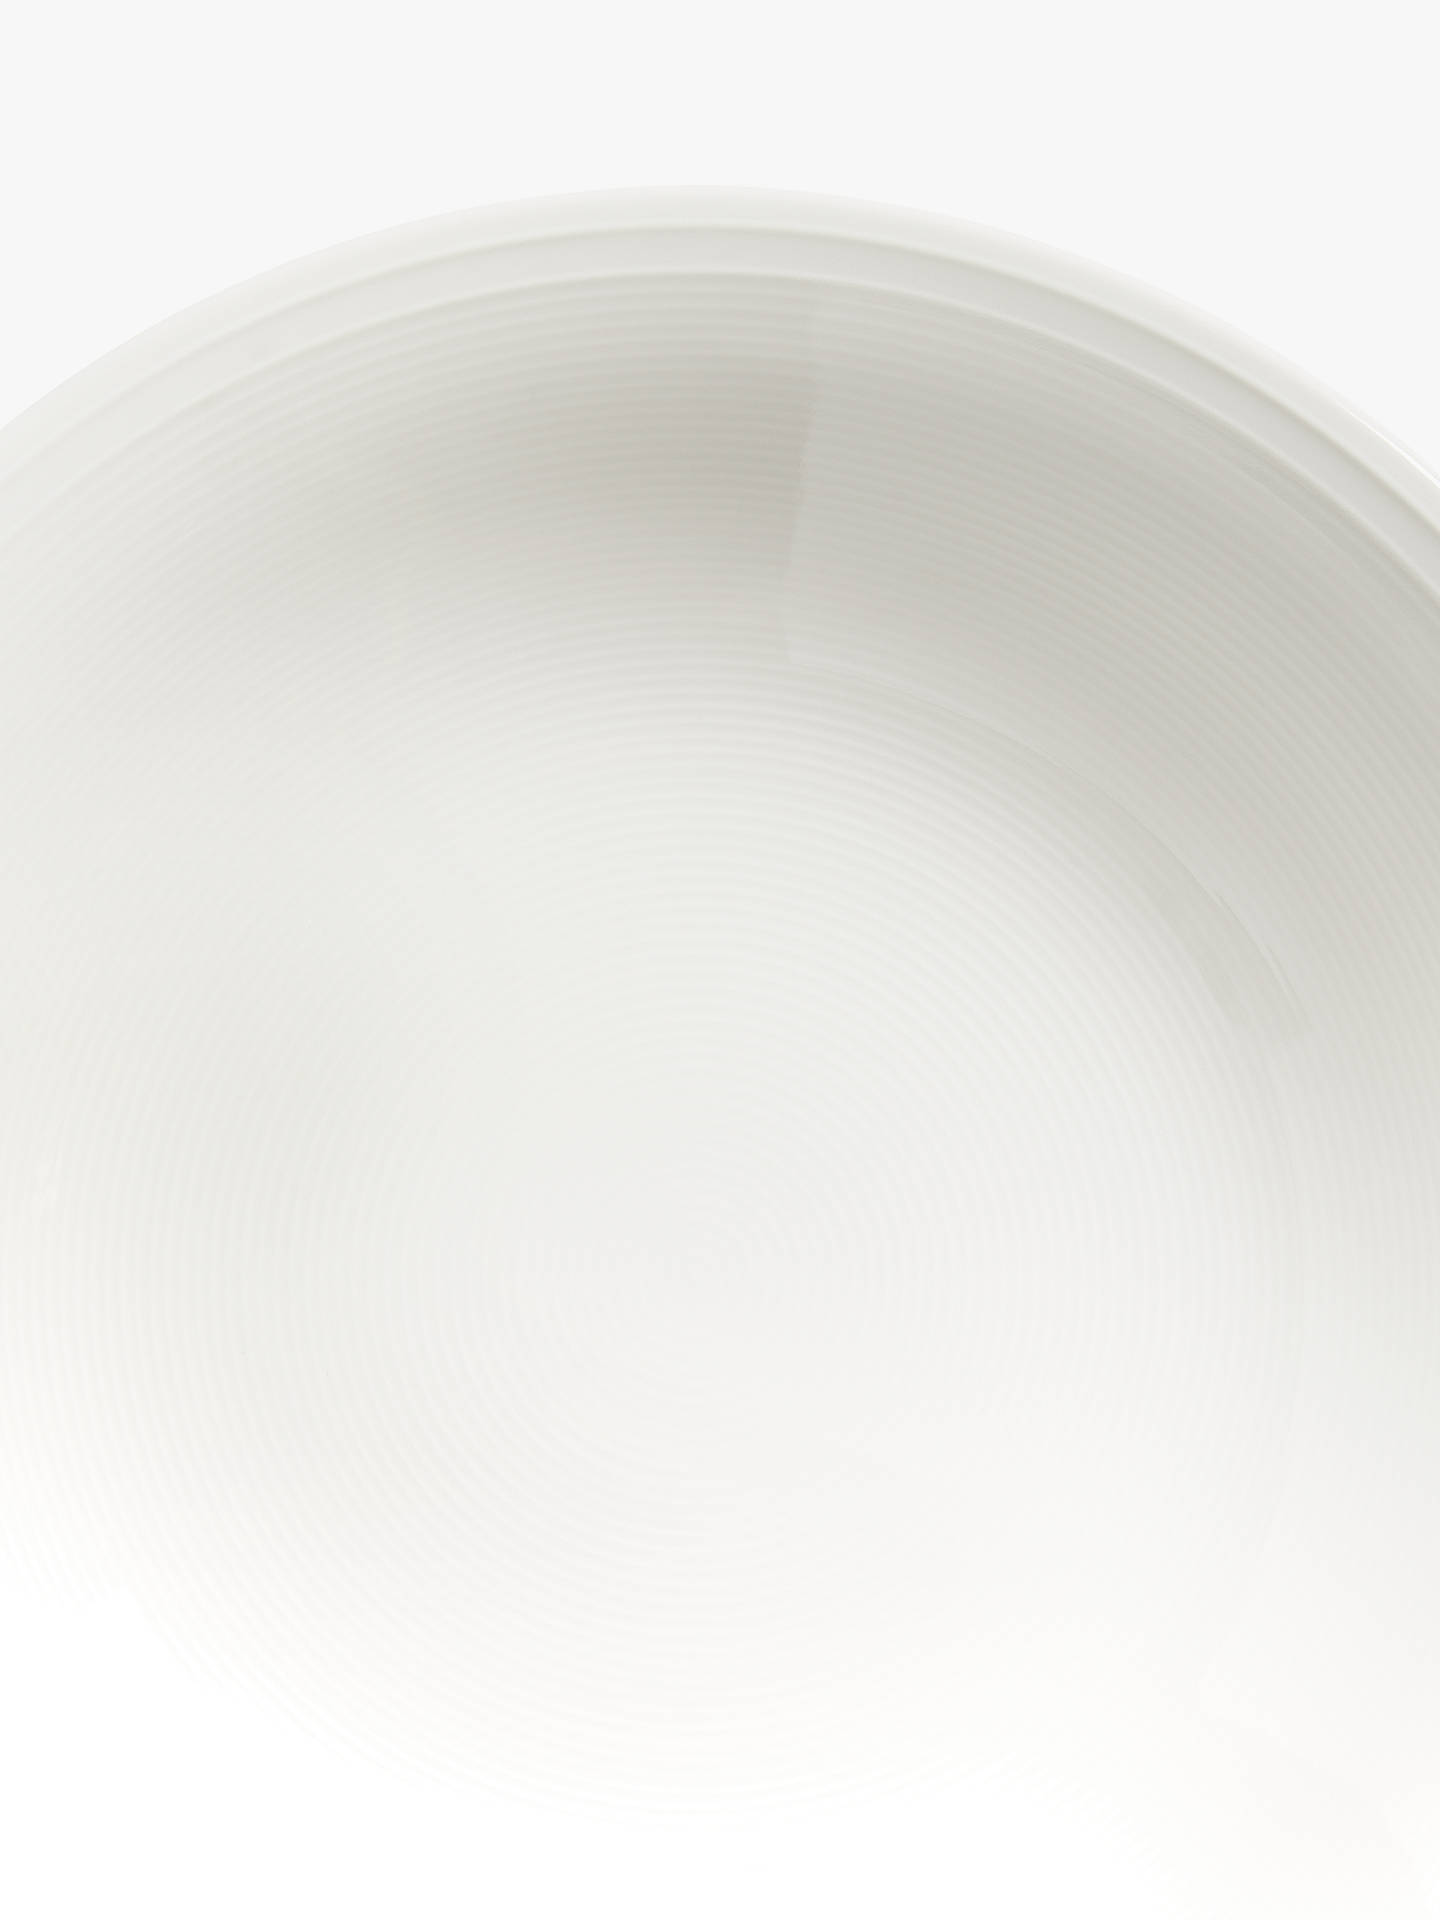 Buy John Lewis & Partners Rhythm Soup Plate, 23cm, White Online at johnlewis.com